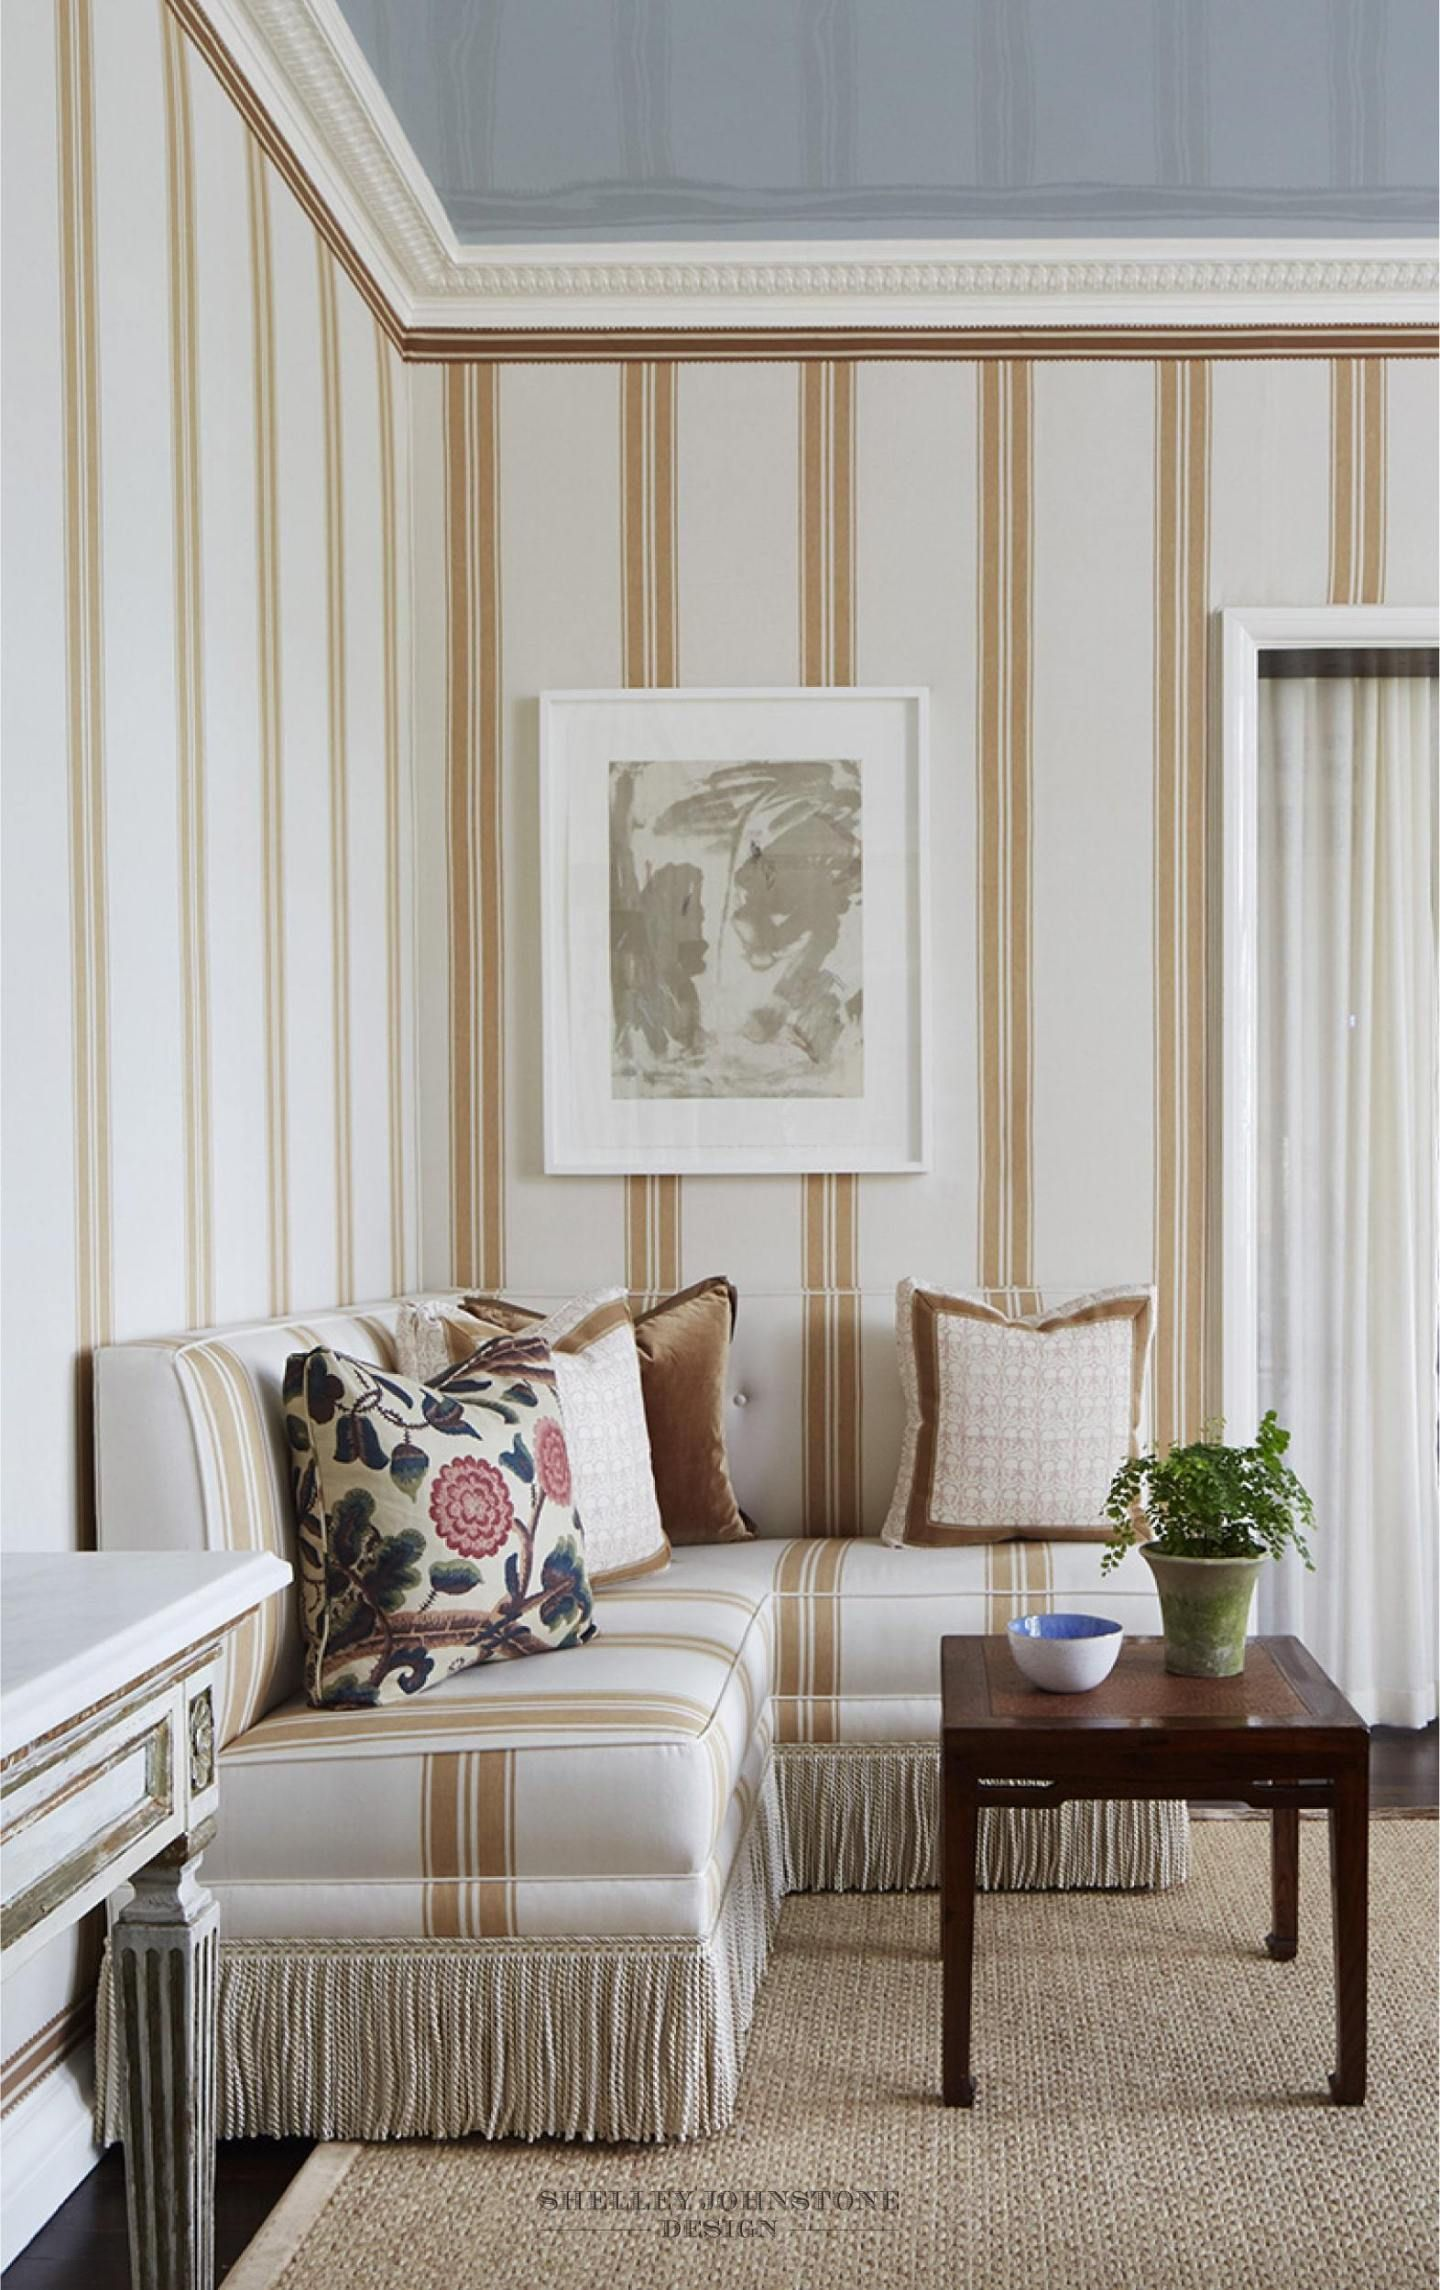 Get The Look: Four High-End Designs By Shelley Johnstone